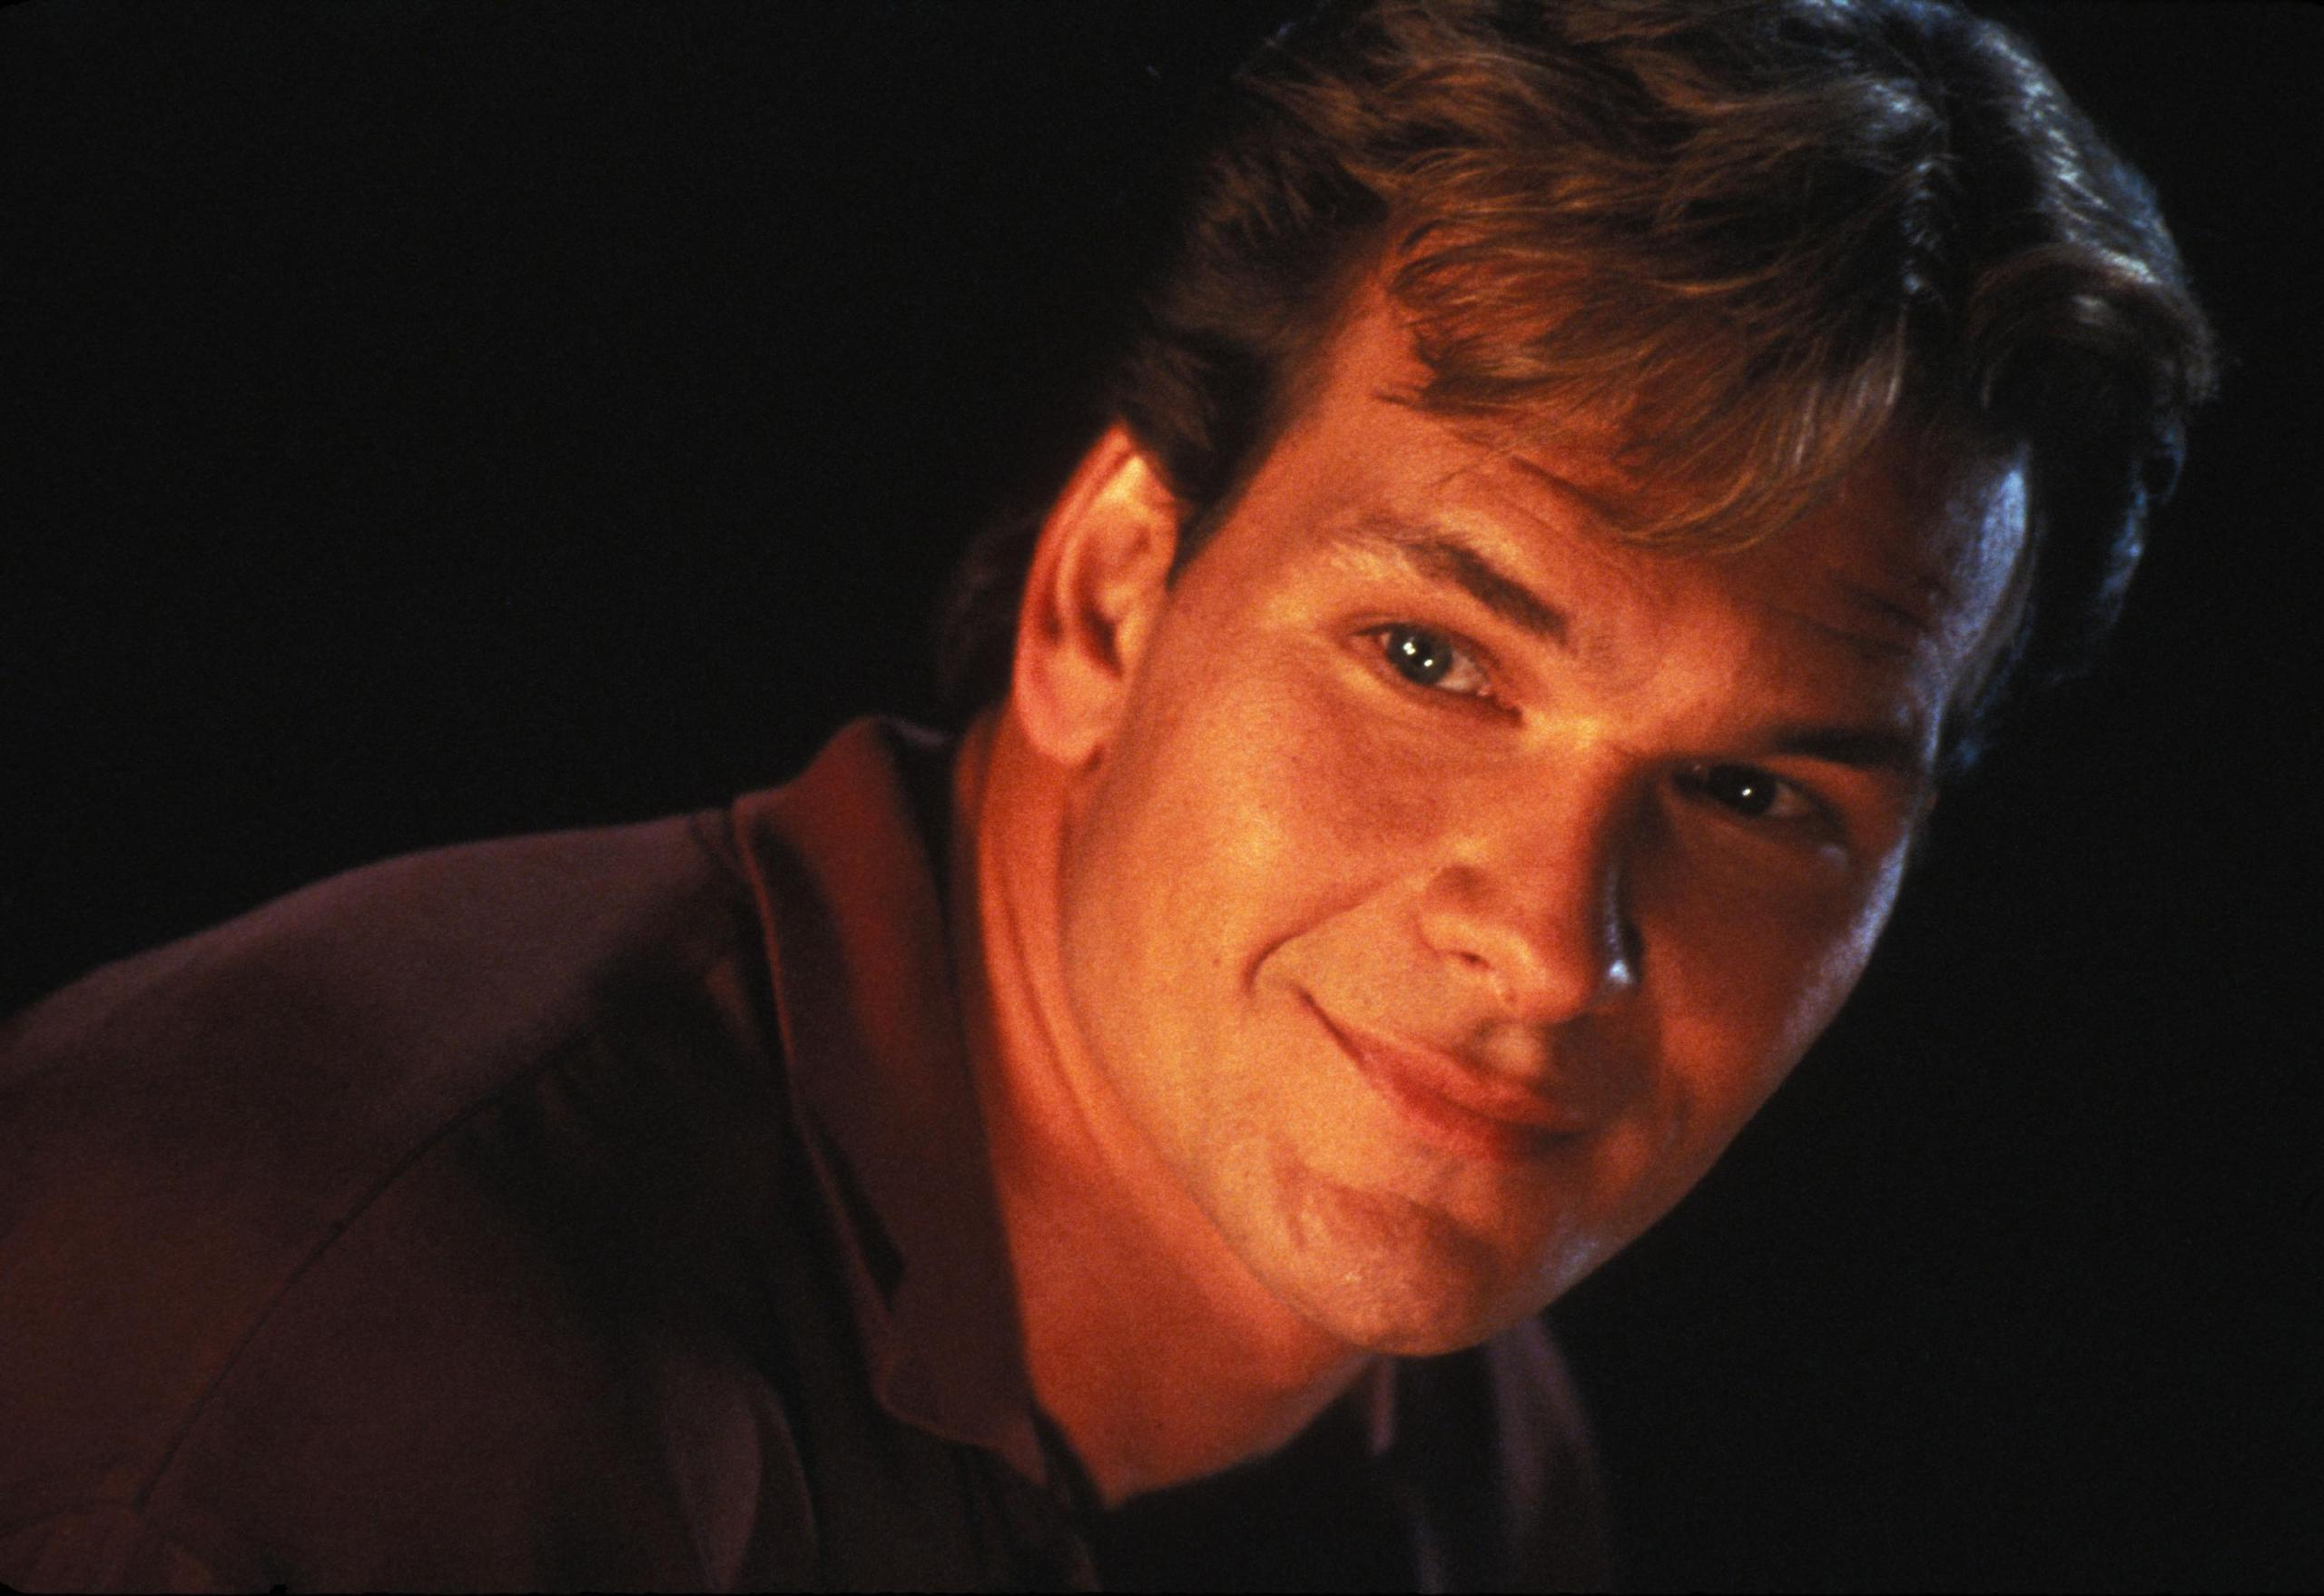 Patrick Swayze Backgrounds